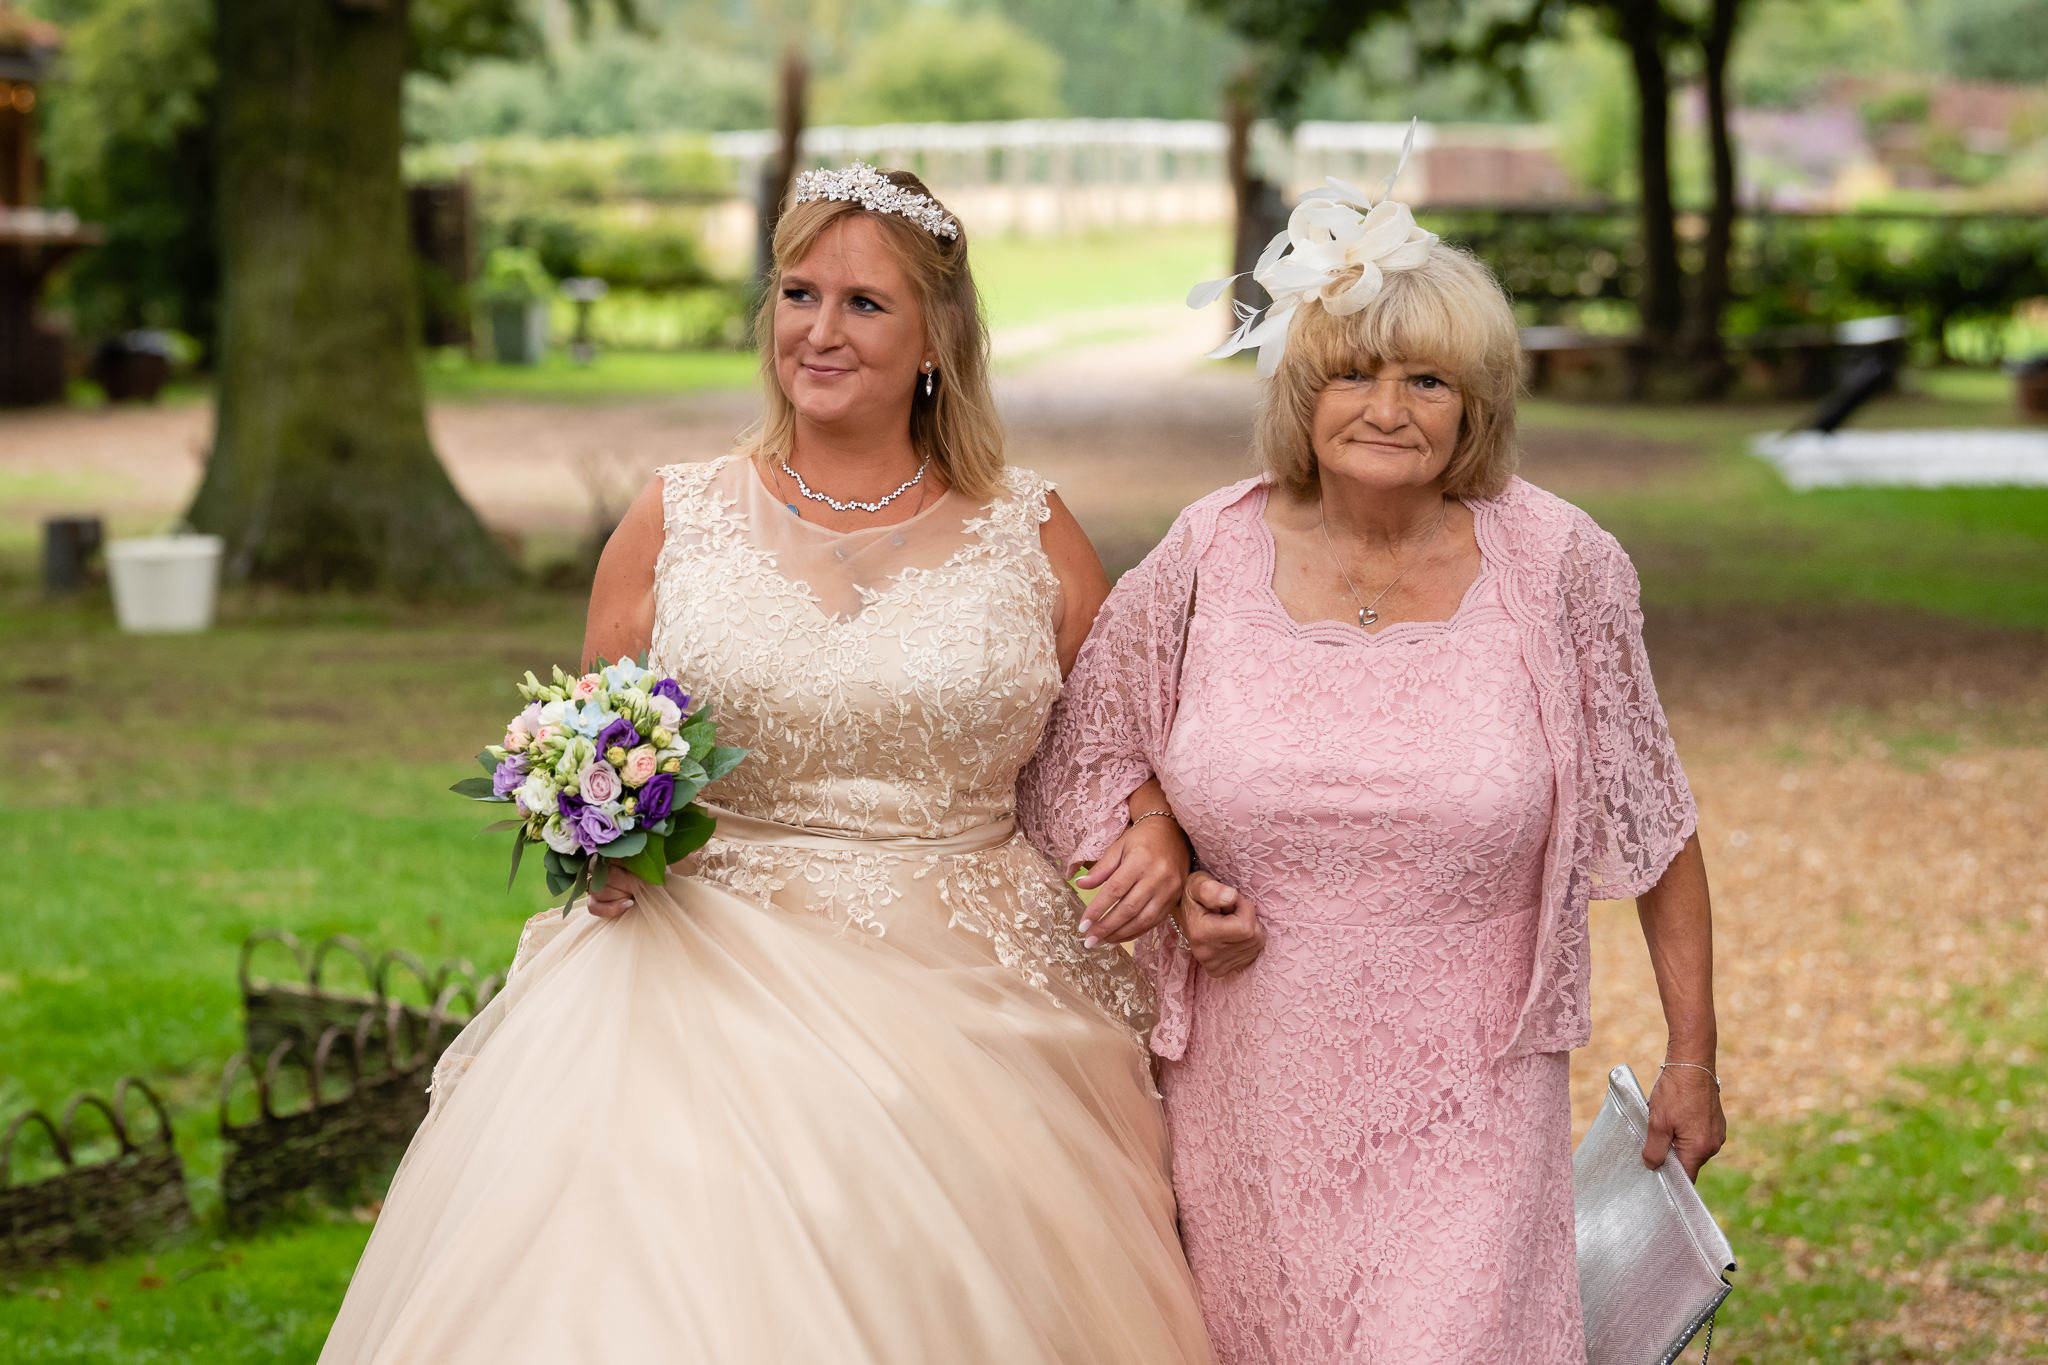 The bride and her mum walking towards the wedding ceremony